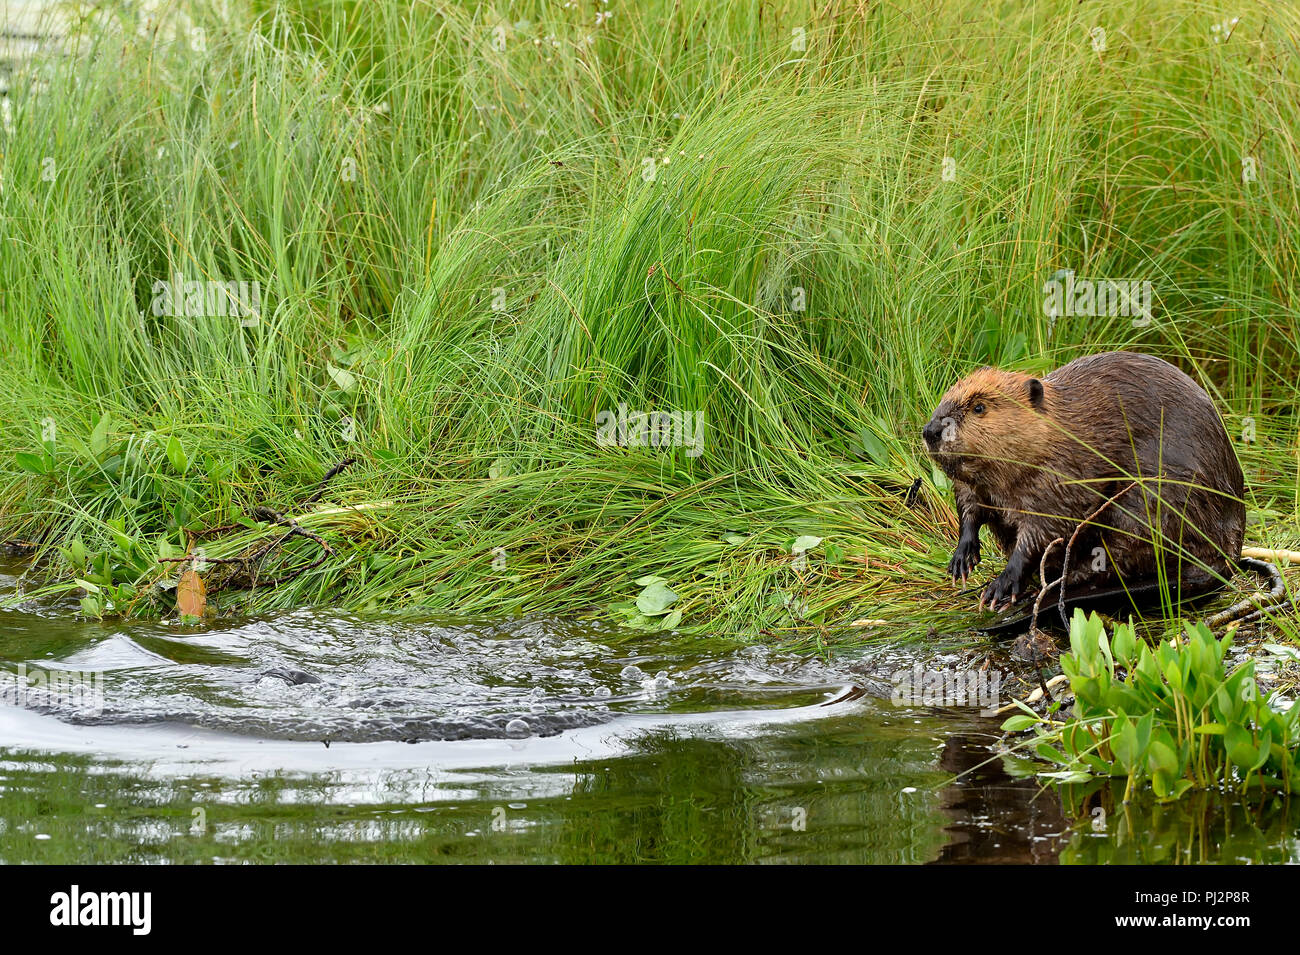 A young beaver  'Castor canadenis'; with a lost expression on his face after his mother dove into the waterleaving him sitting alone on the shore. - Stock Image